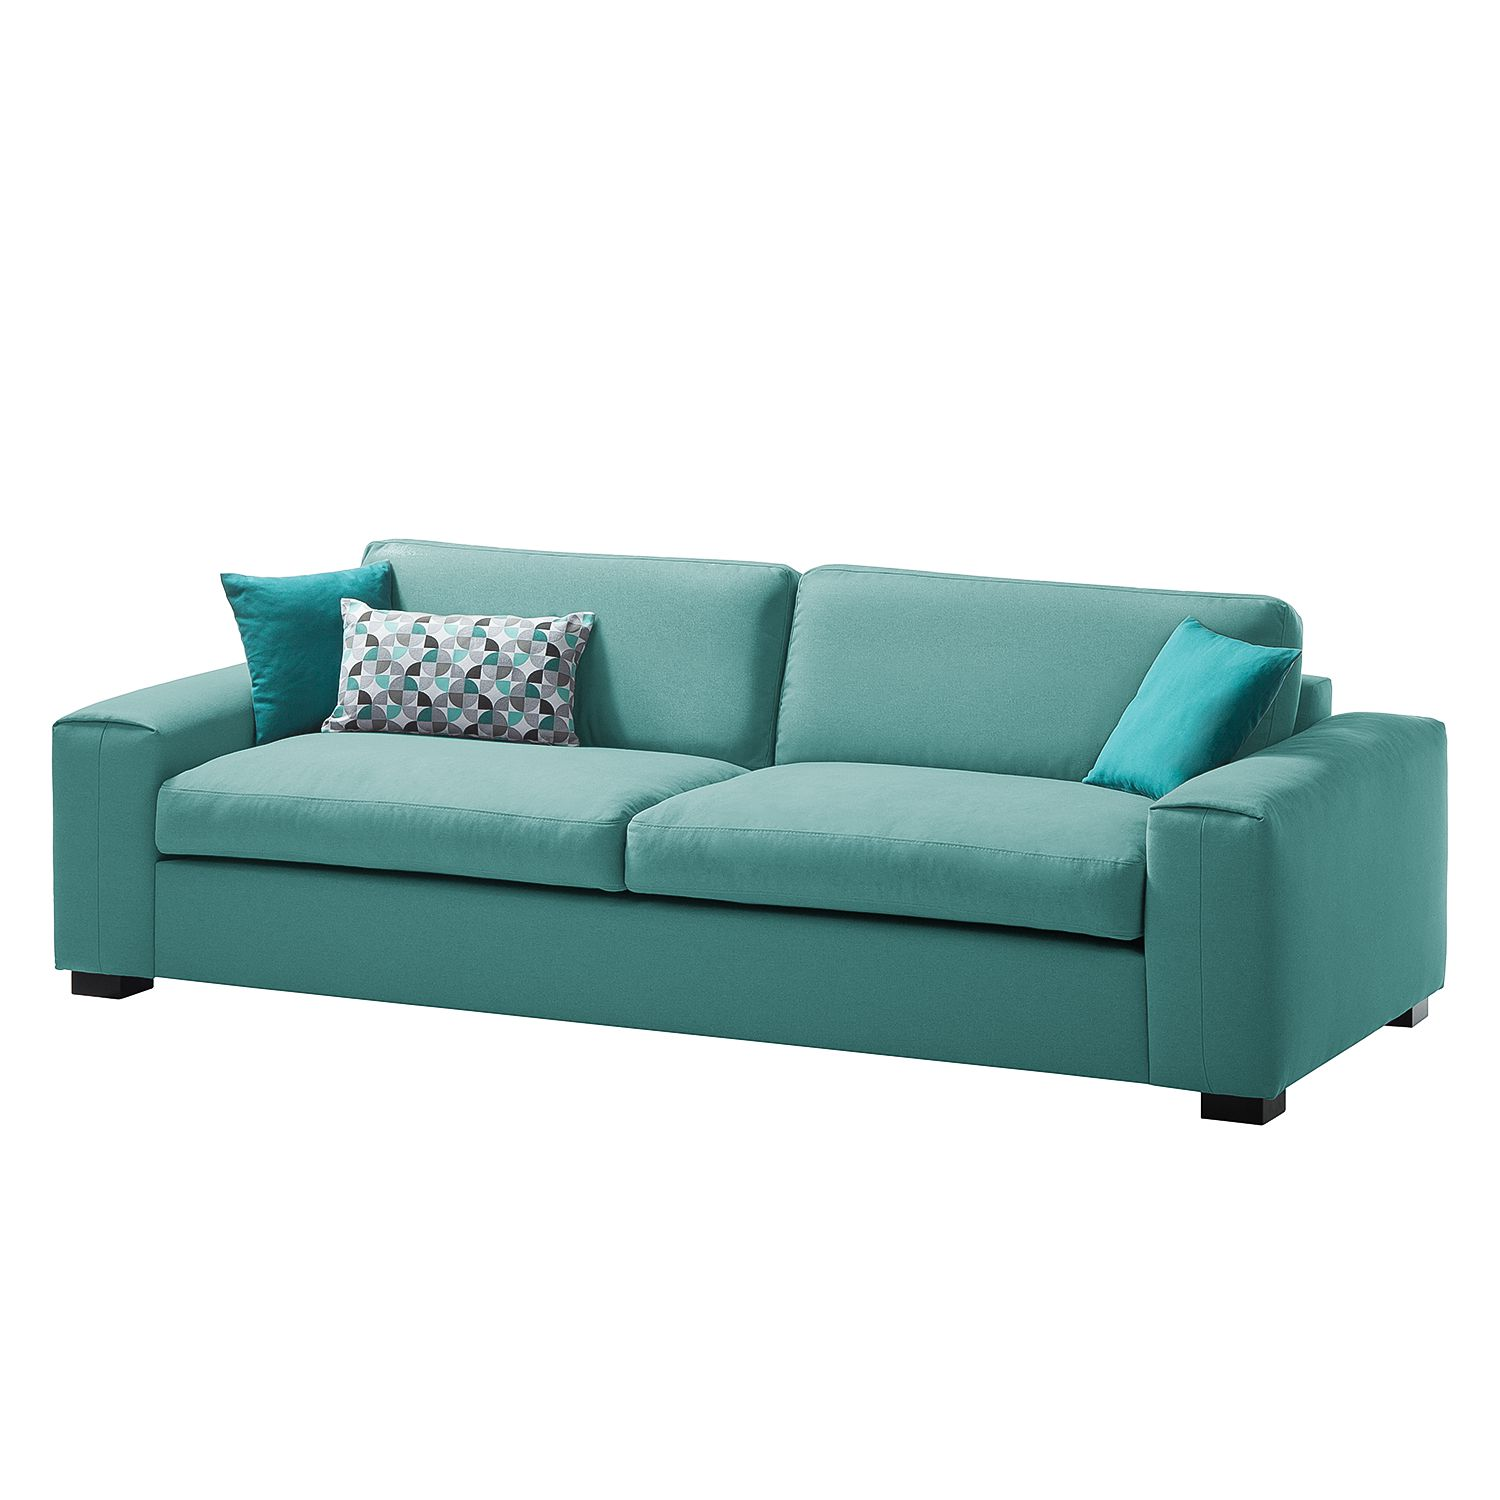 Sofa Bestellen Sofa Bestellen Excellent Bend Anthrazit With Sofa